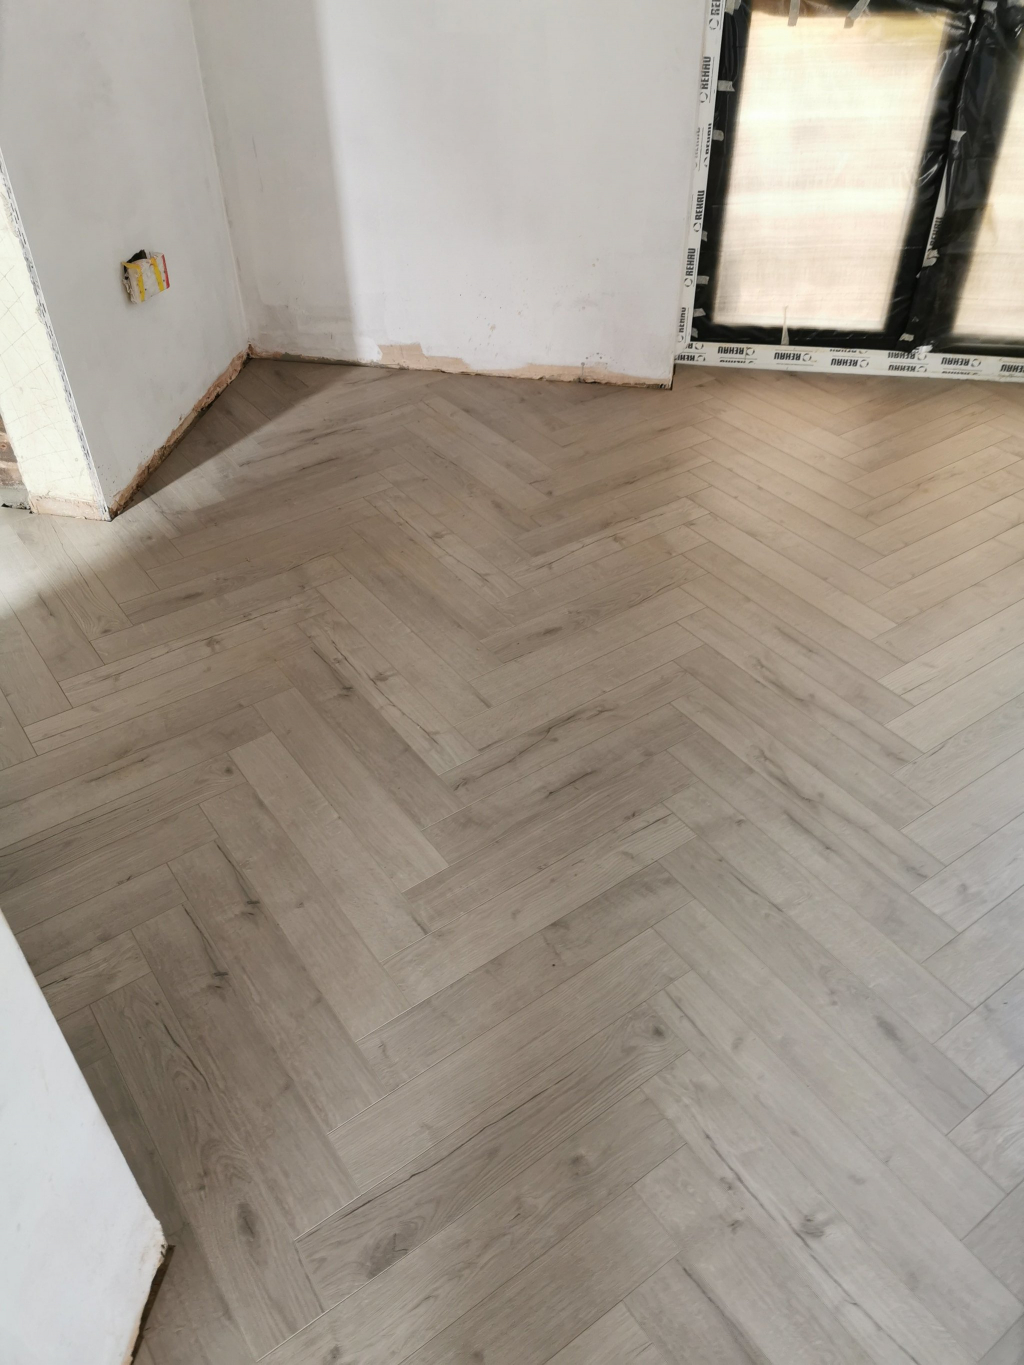 Herringbone Laminate Flooring Installation - #2